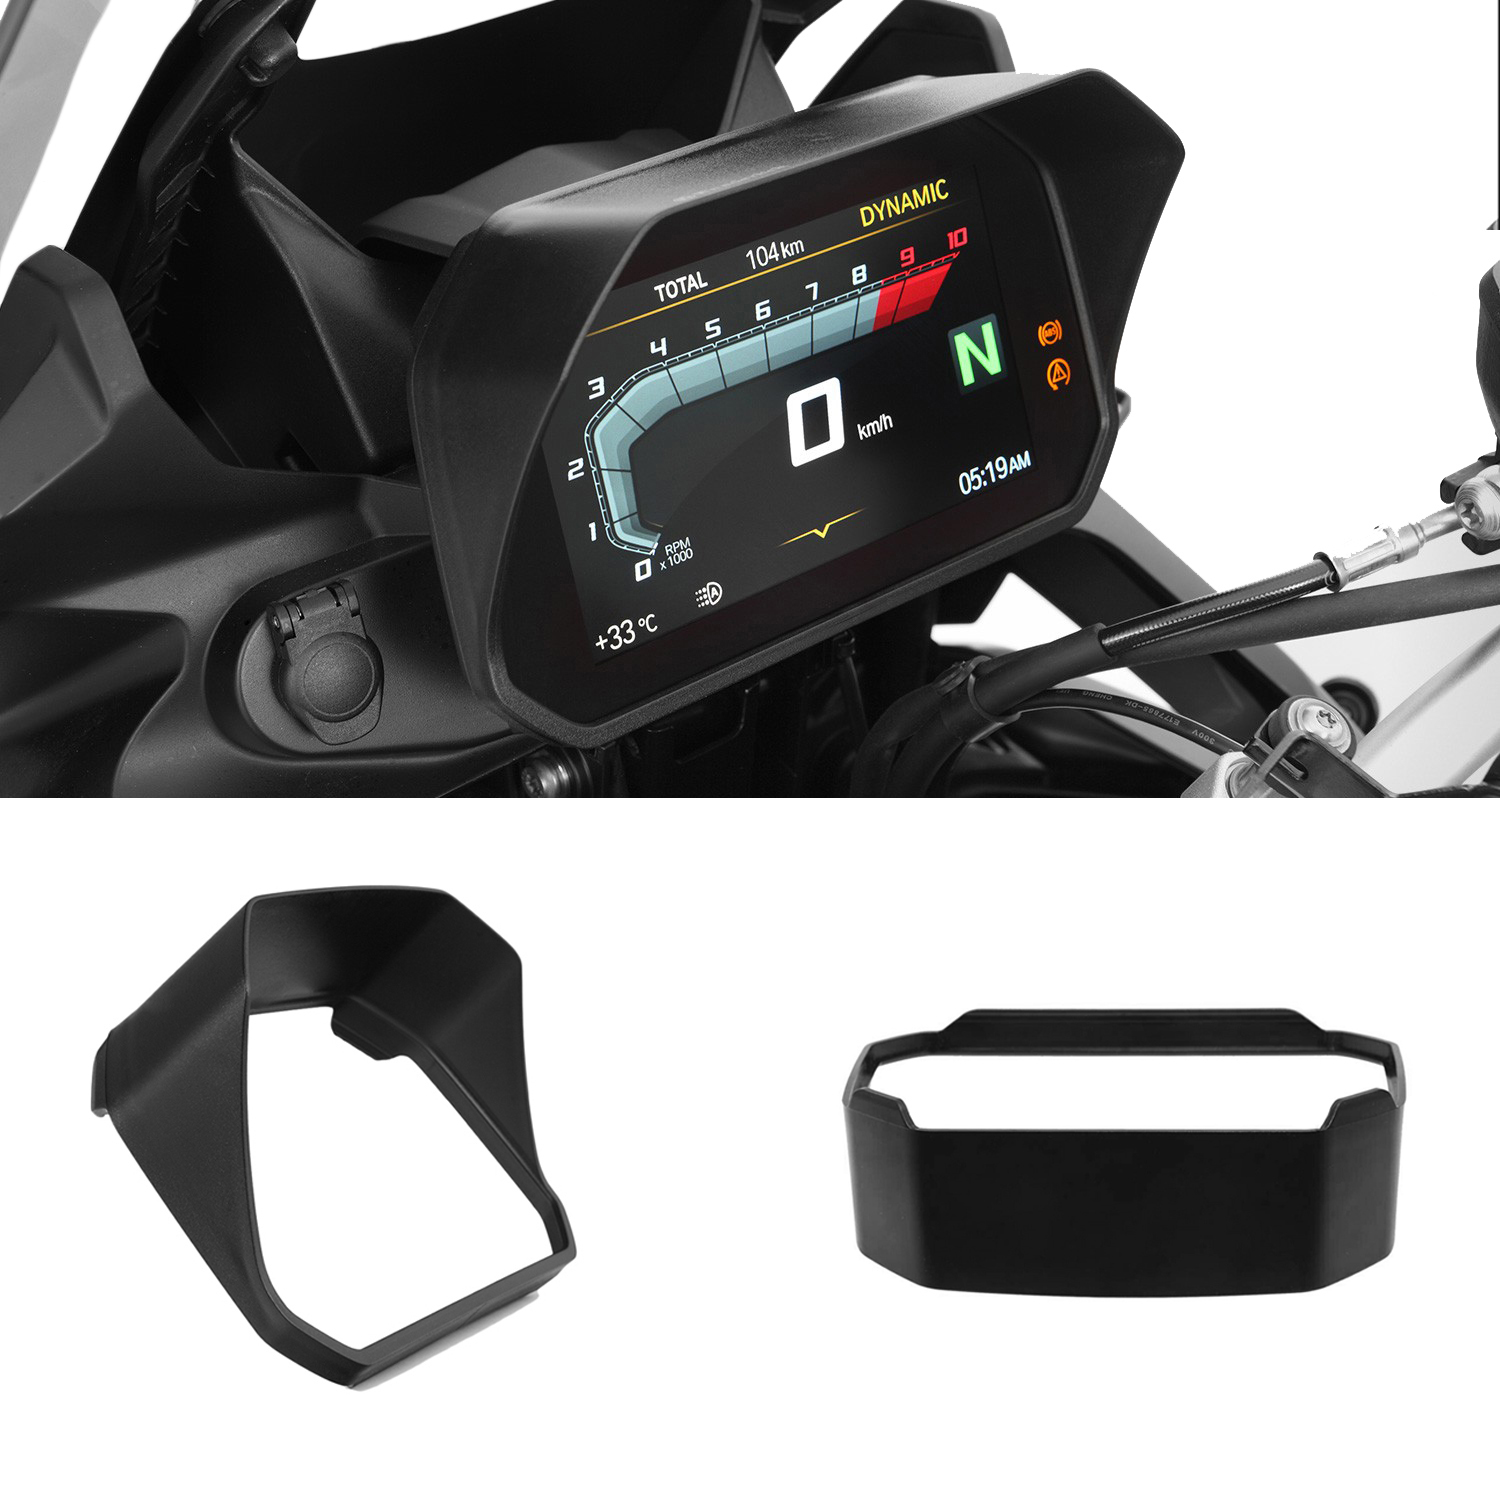 Image 2 - KEMiMOTO Speedometer Sun Visor for BMW R1200GS R 1200 GS Adv F850GS F750GS F850GS 2018 2019 R1250GS R1250R GS LC Adventure-in Covers & Ornamental Mouldings from Automobiles & Motorcycles